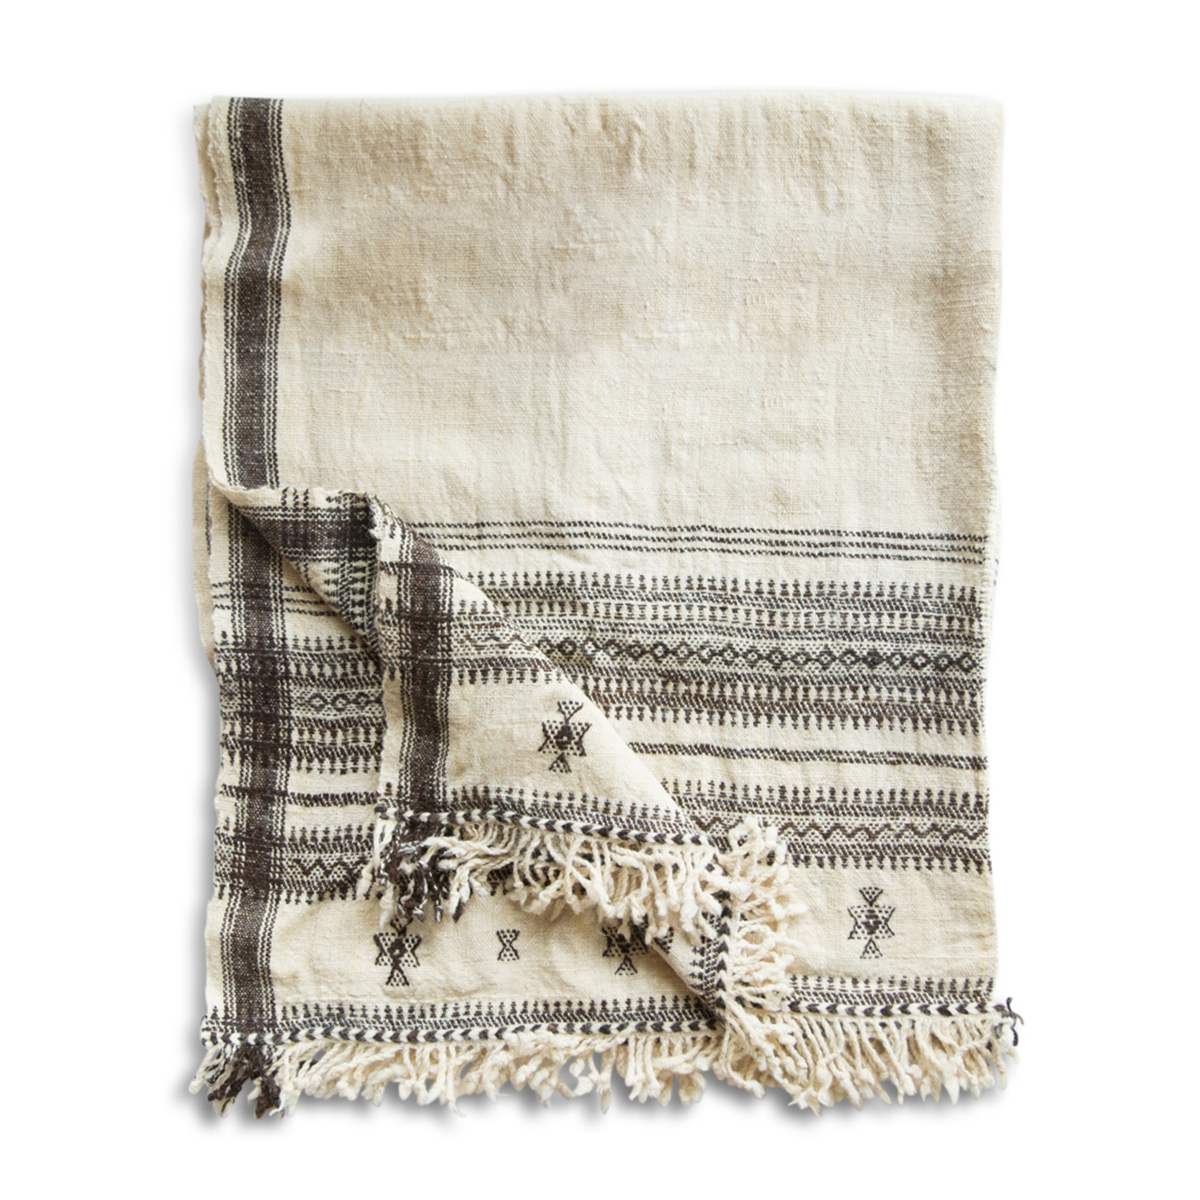 Vankar Indian Wool Blanket